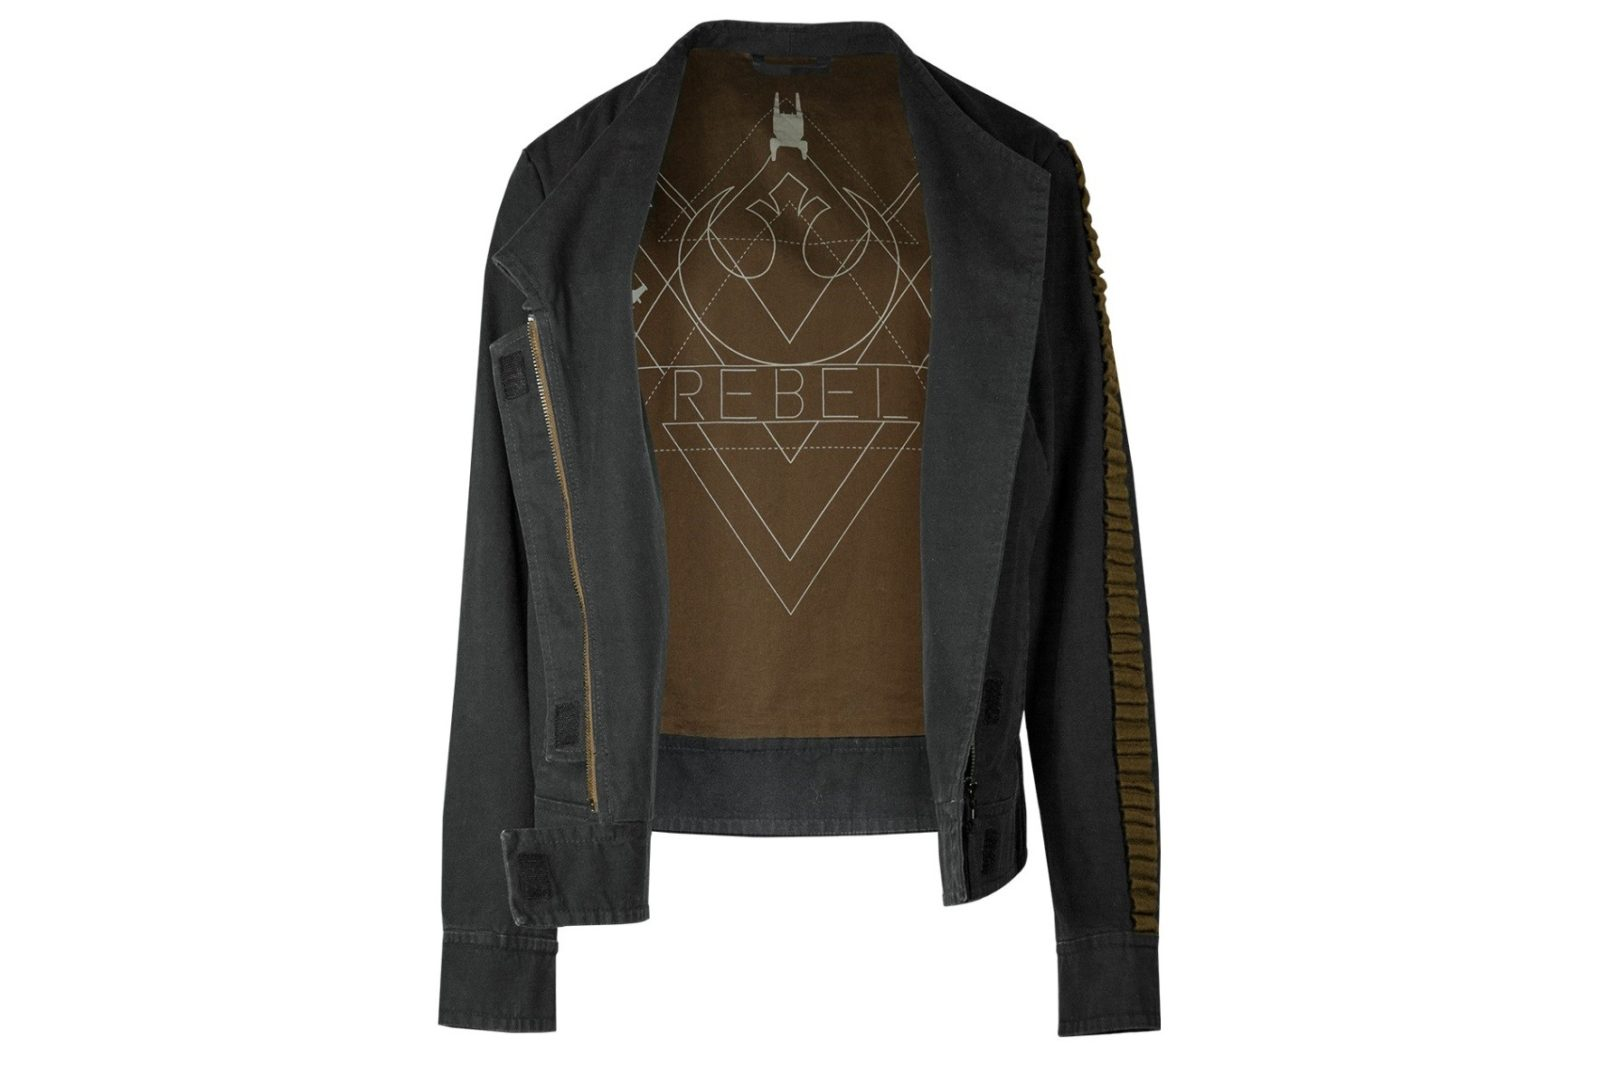 Women's Jyn Erso jacket from Musterbrand!